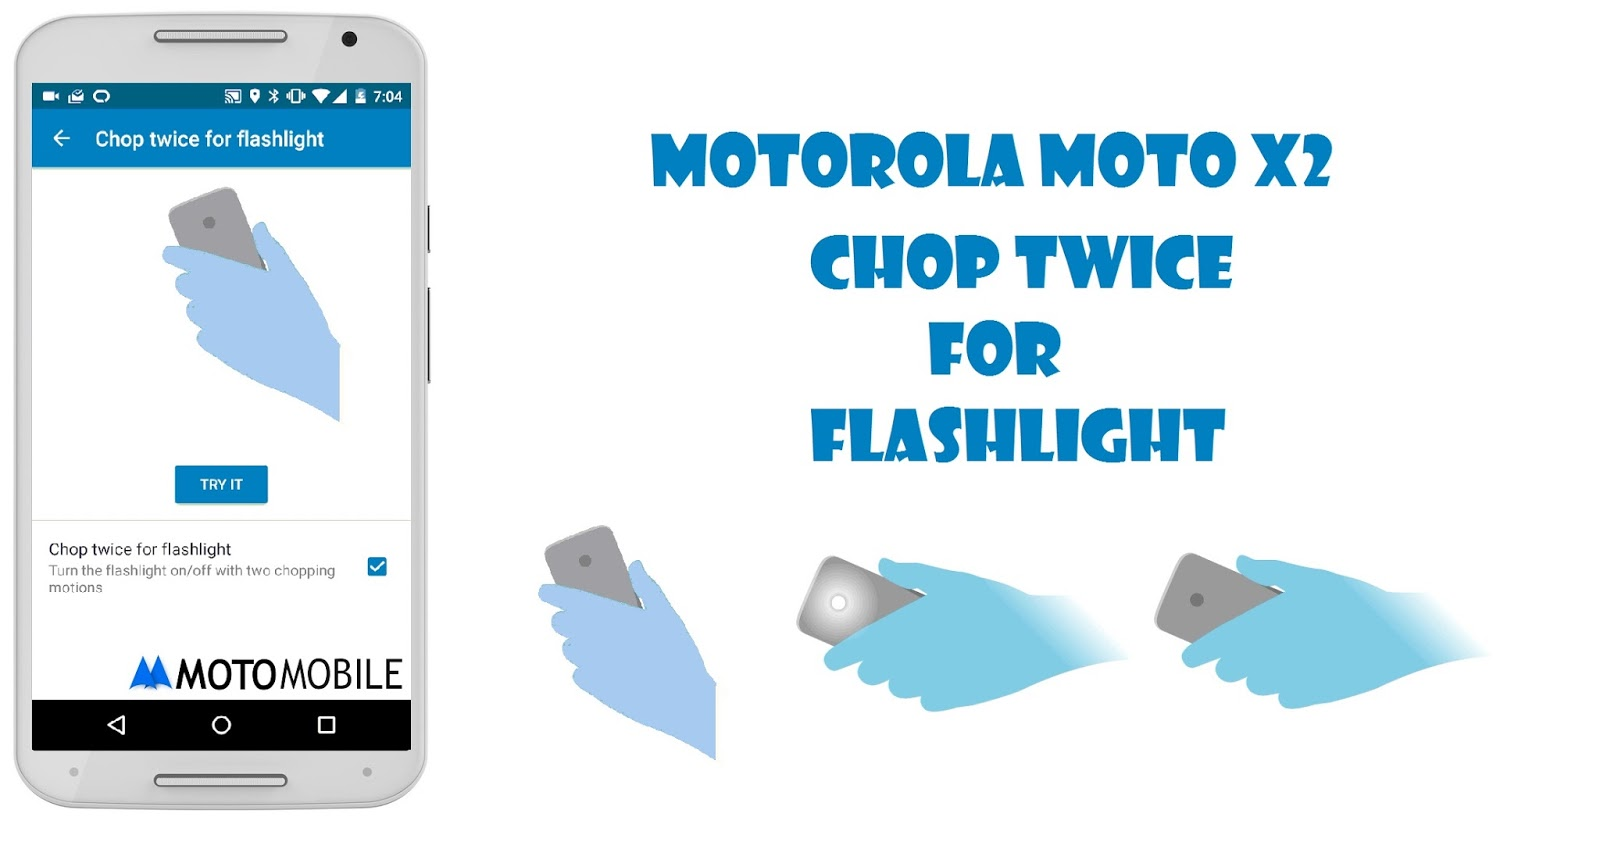 Chop twice for Flashlight Moto X